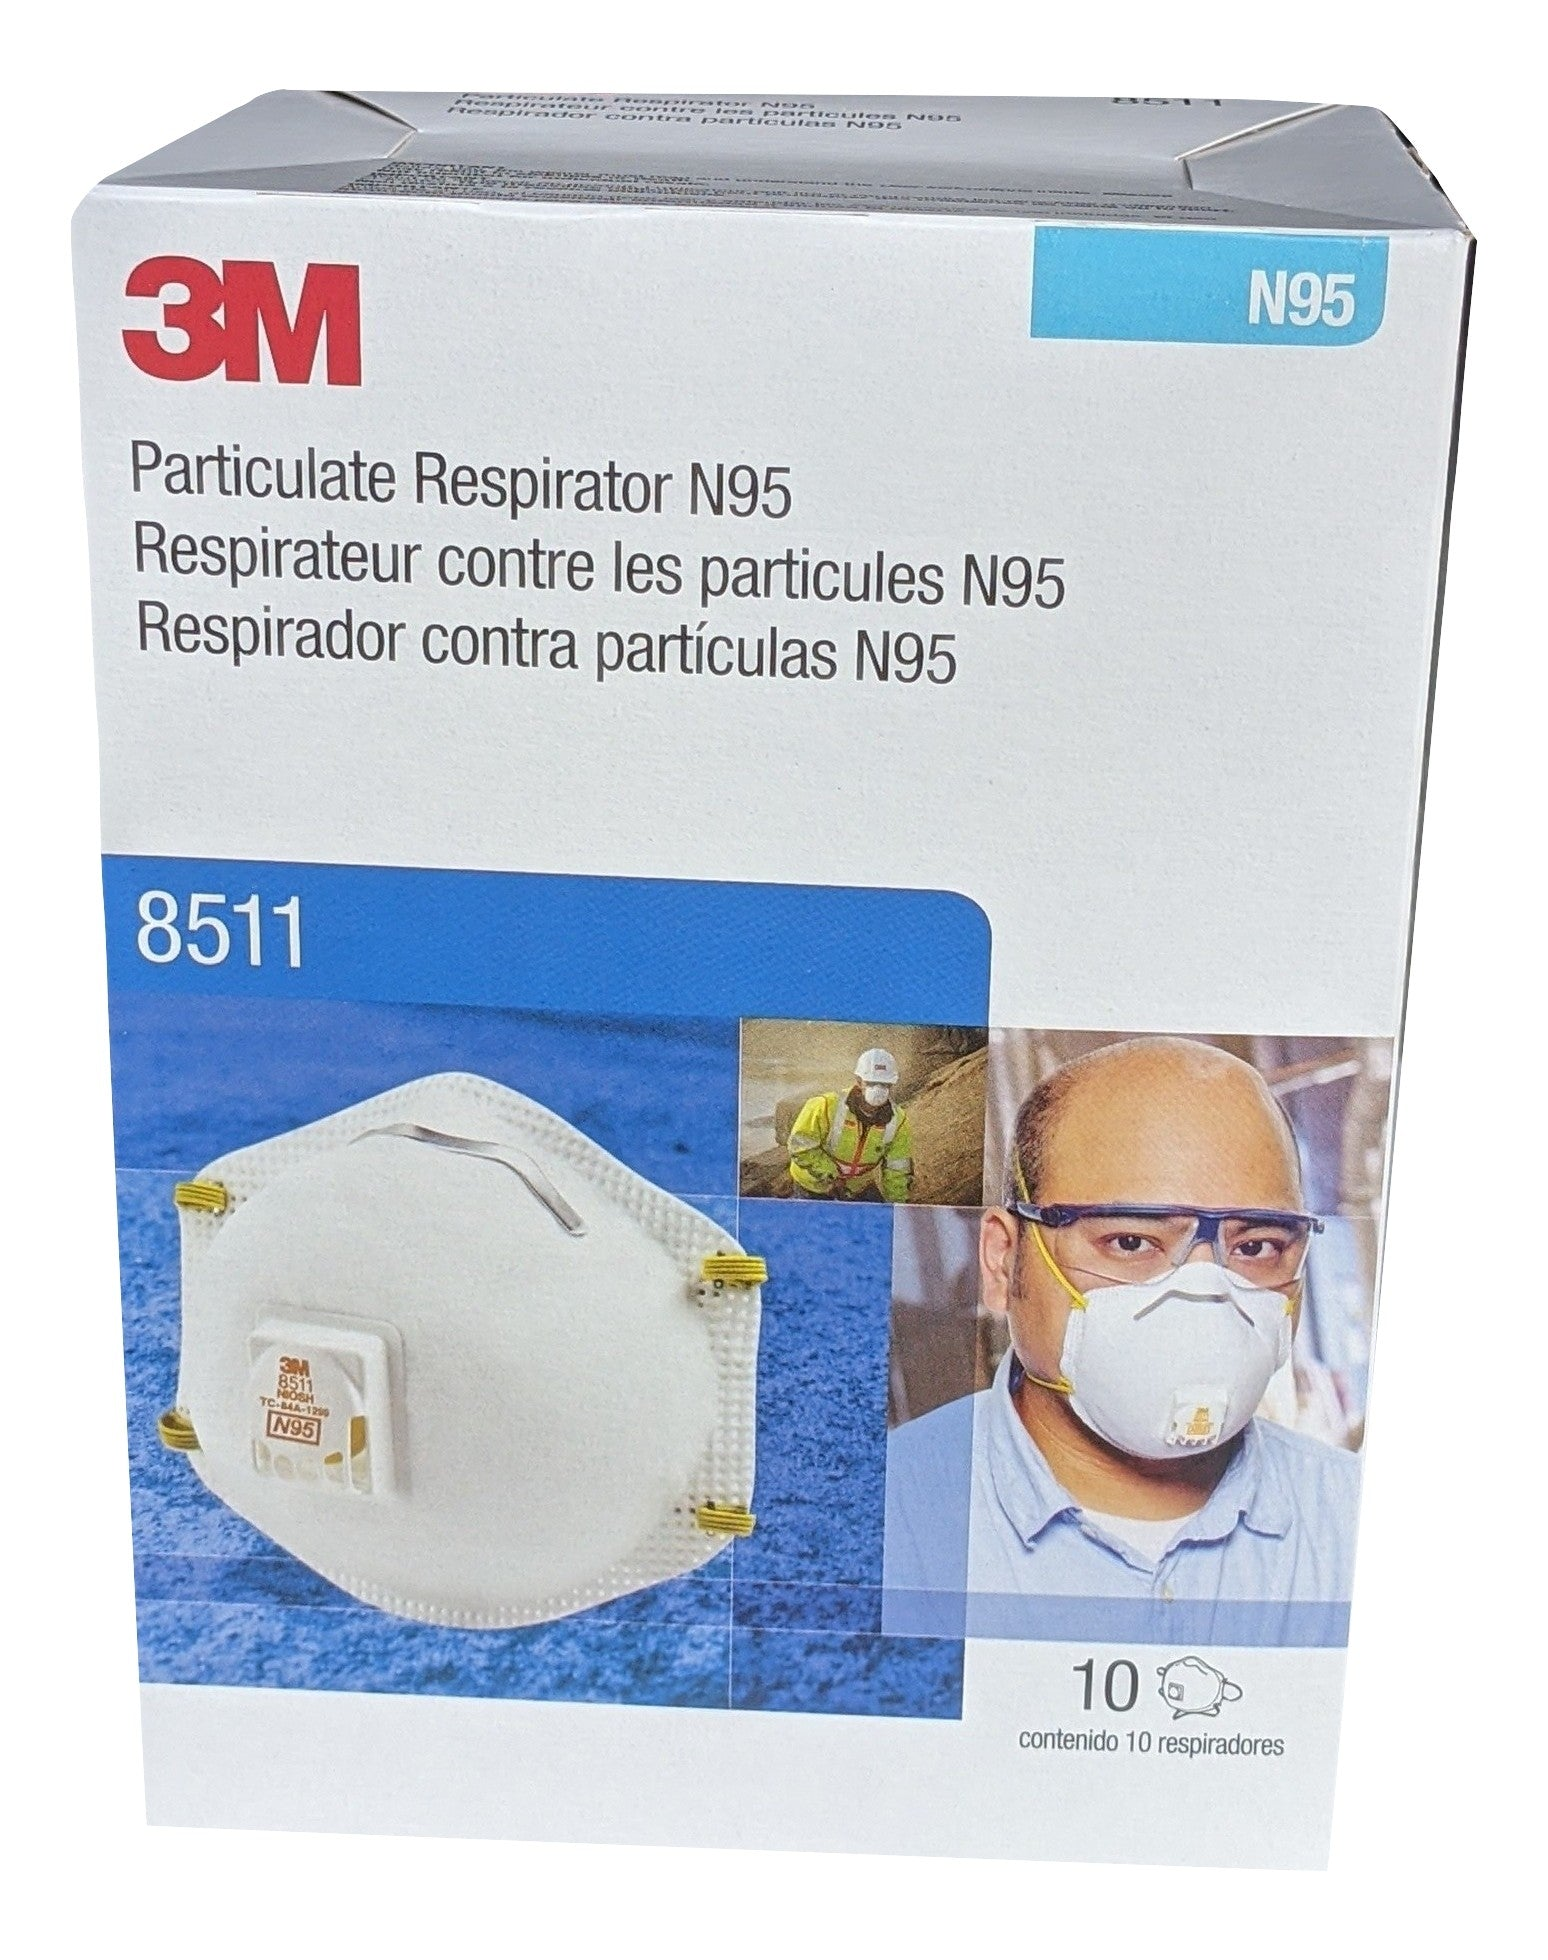 3M 8511 N95 Particulate Respirator Mask, NIOSH approved - 80 pcs (Case of 8 Boxes)